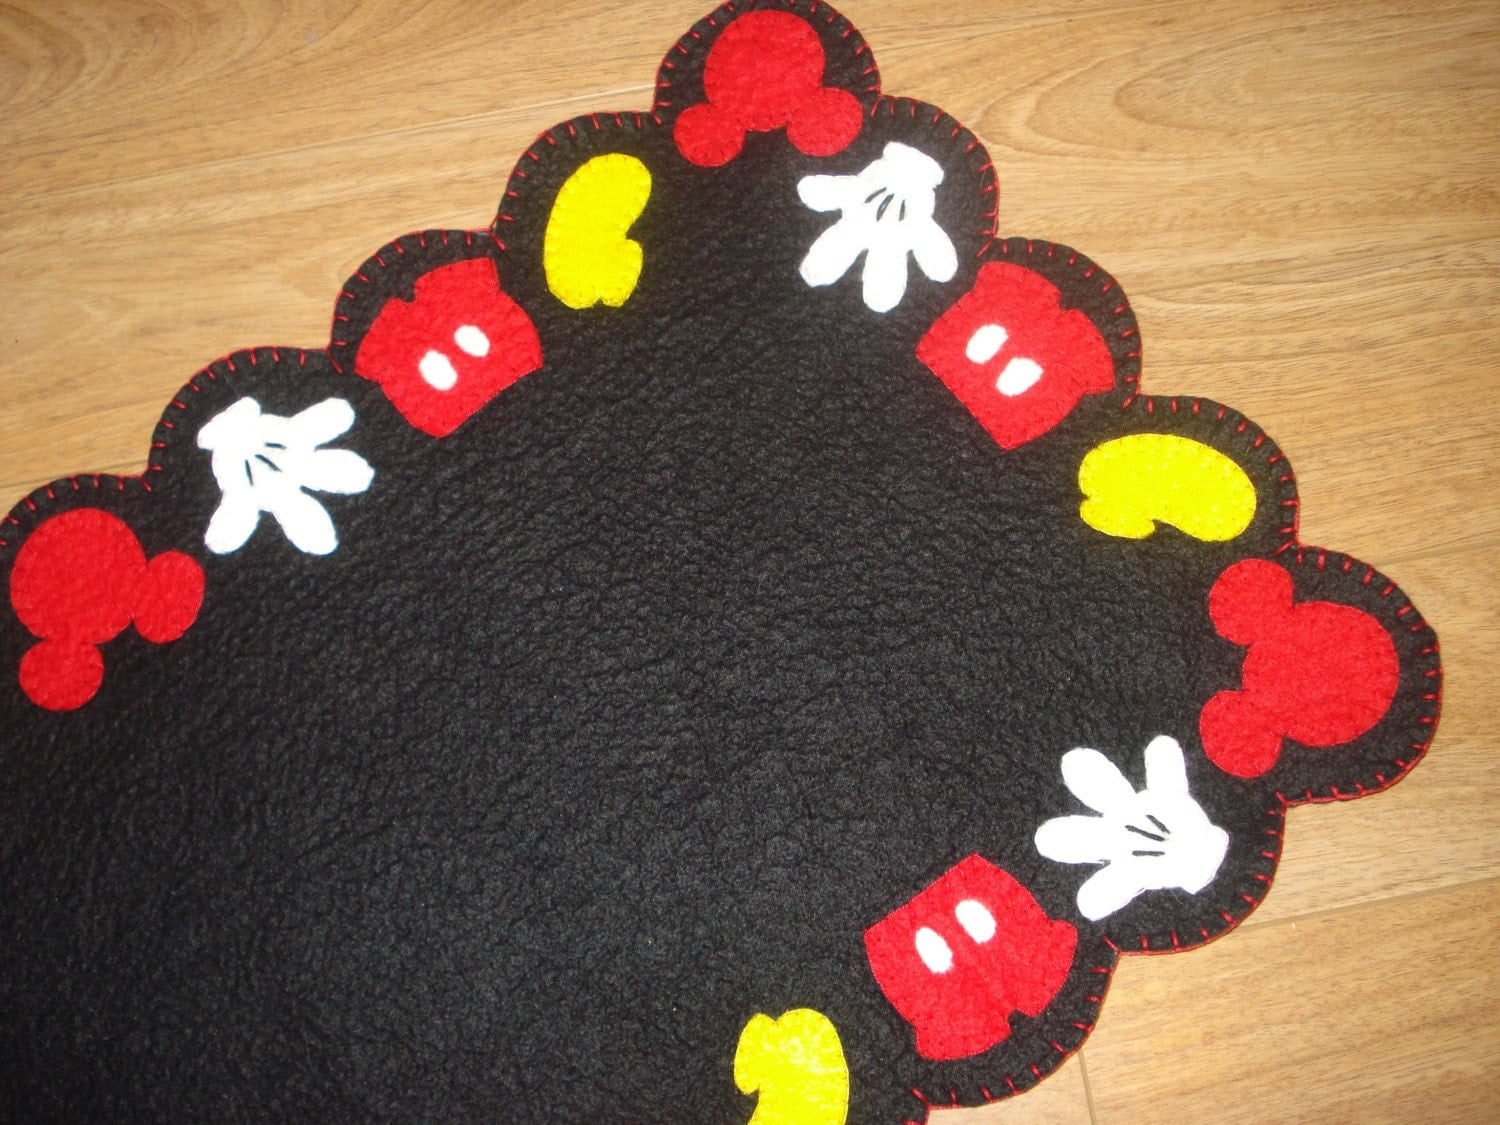 Penny Rug Mickey Mouse Inspired Table Runner 55 Inches Long